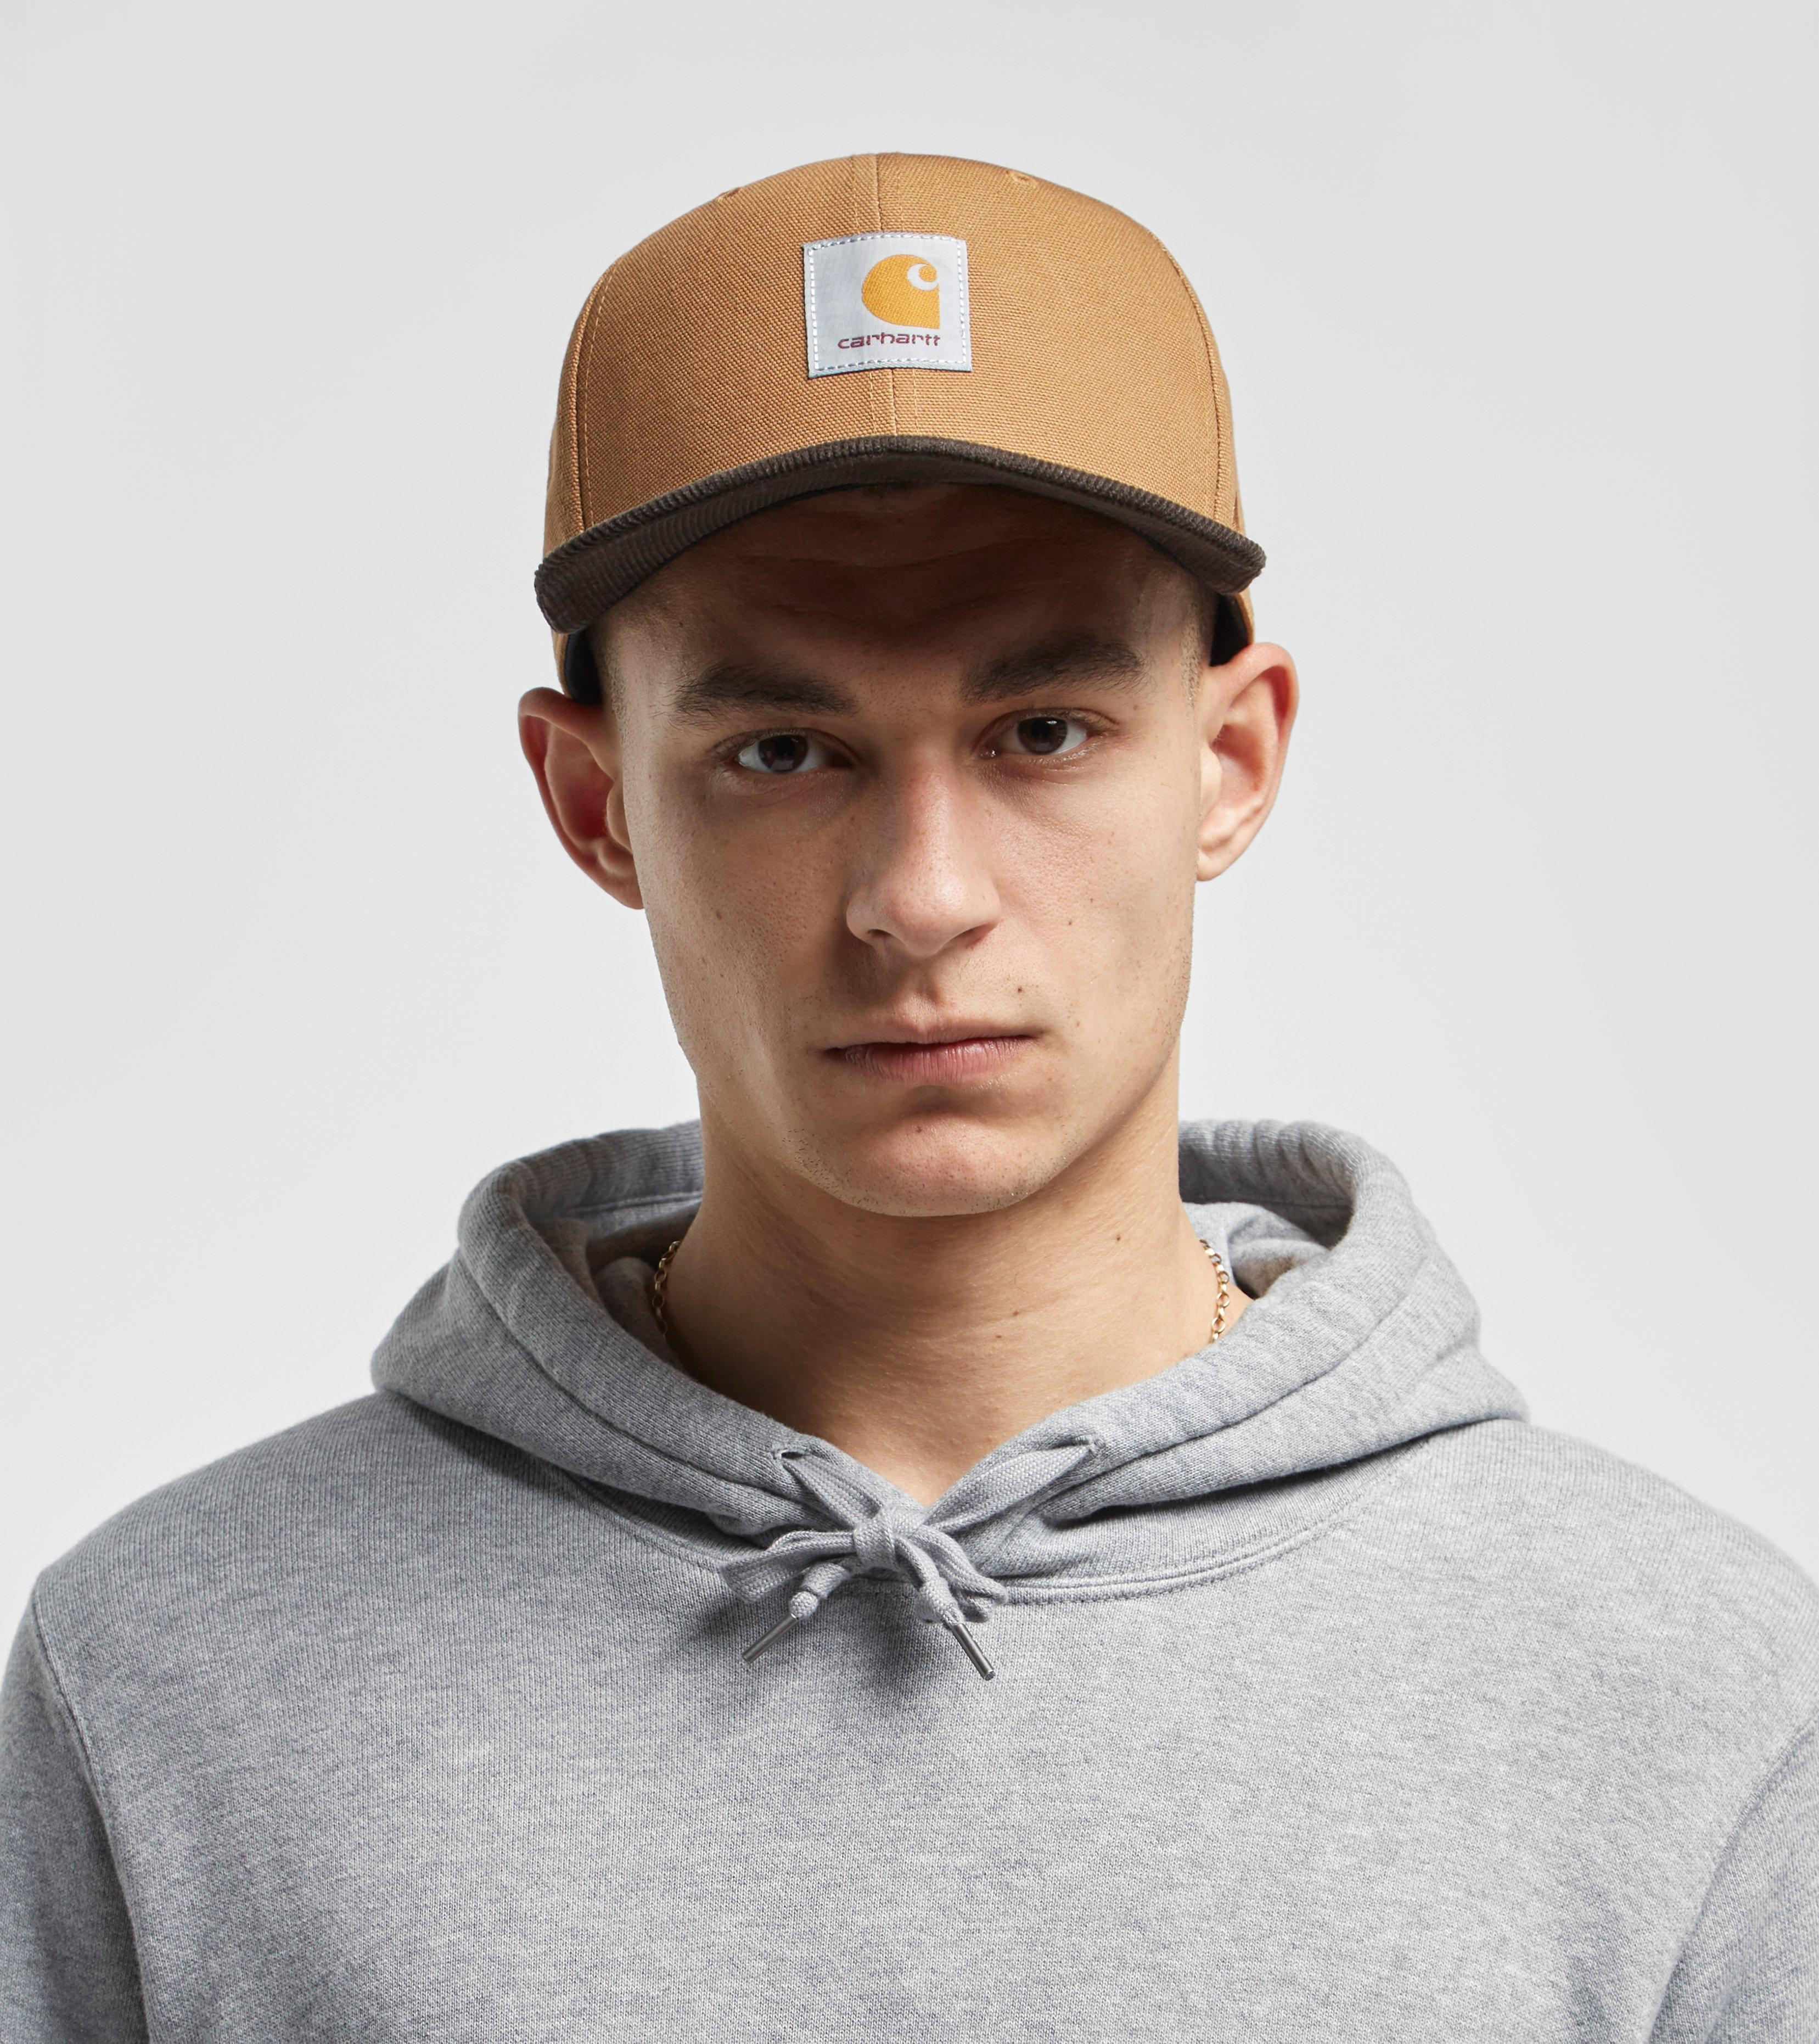 Lyst - Nike X Carhartt Wip Nrg Pro Cap in Brown for Men 0152f9dcb47